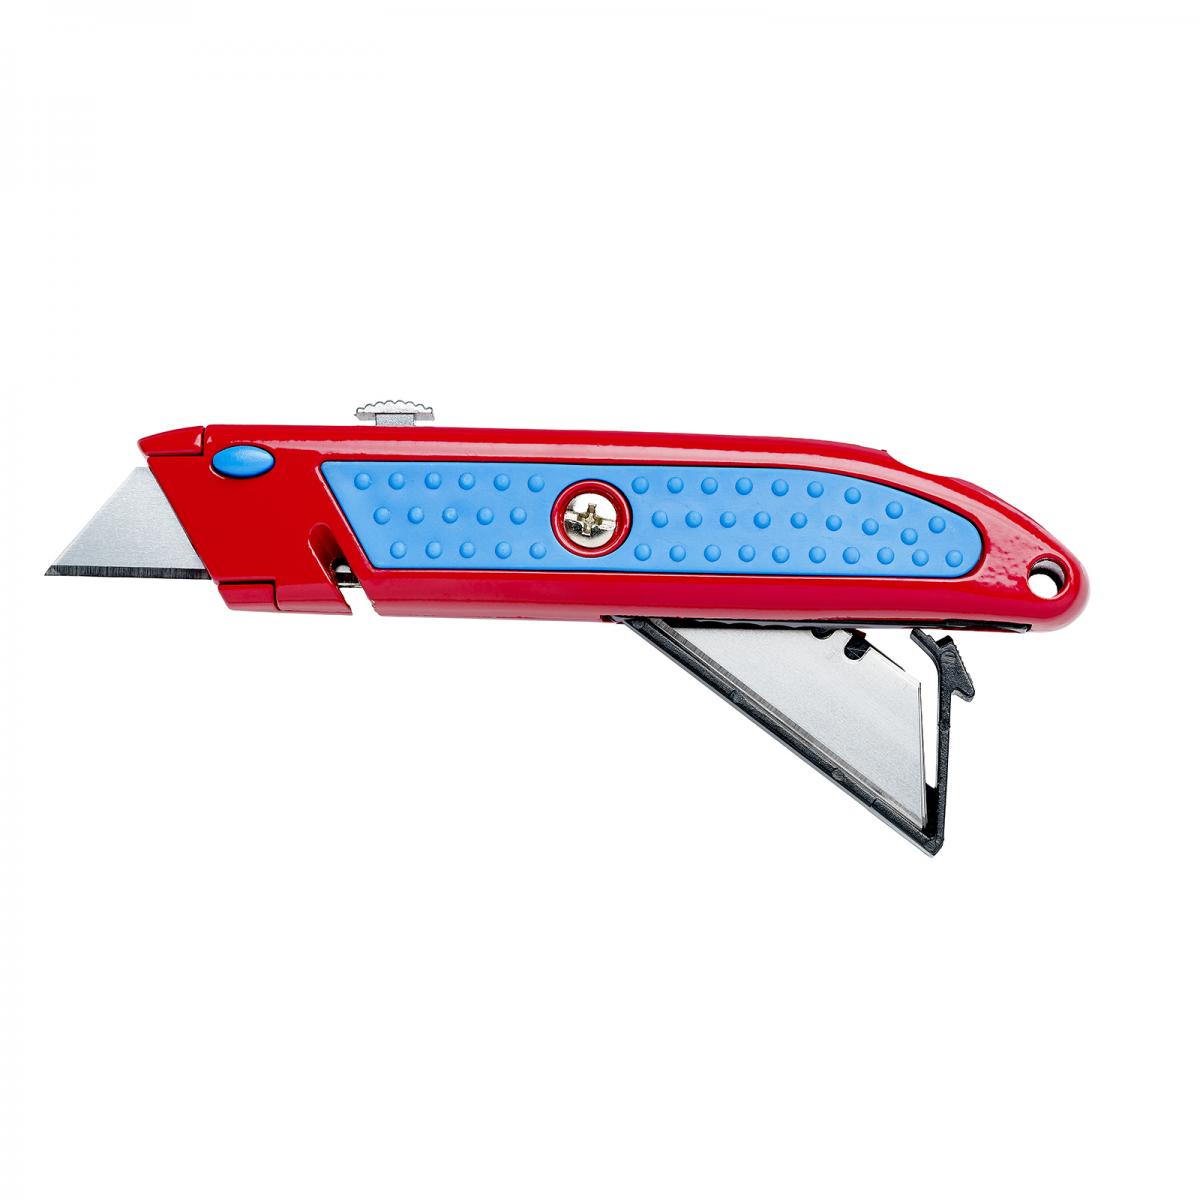 RST Site mate Utility Knife – Now Only £4.00